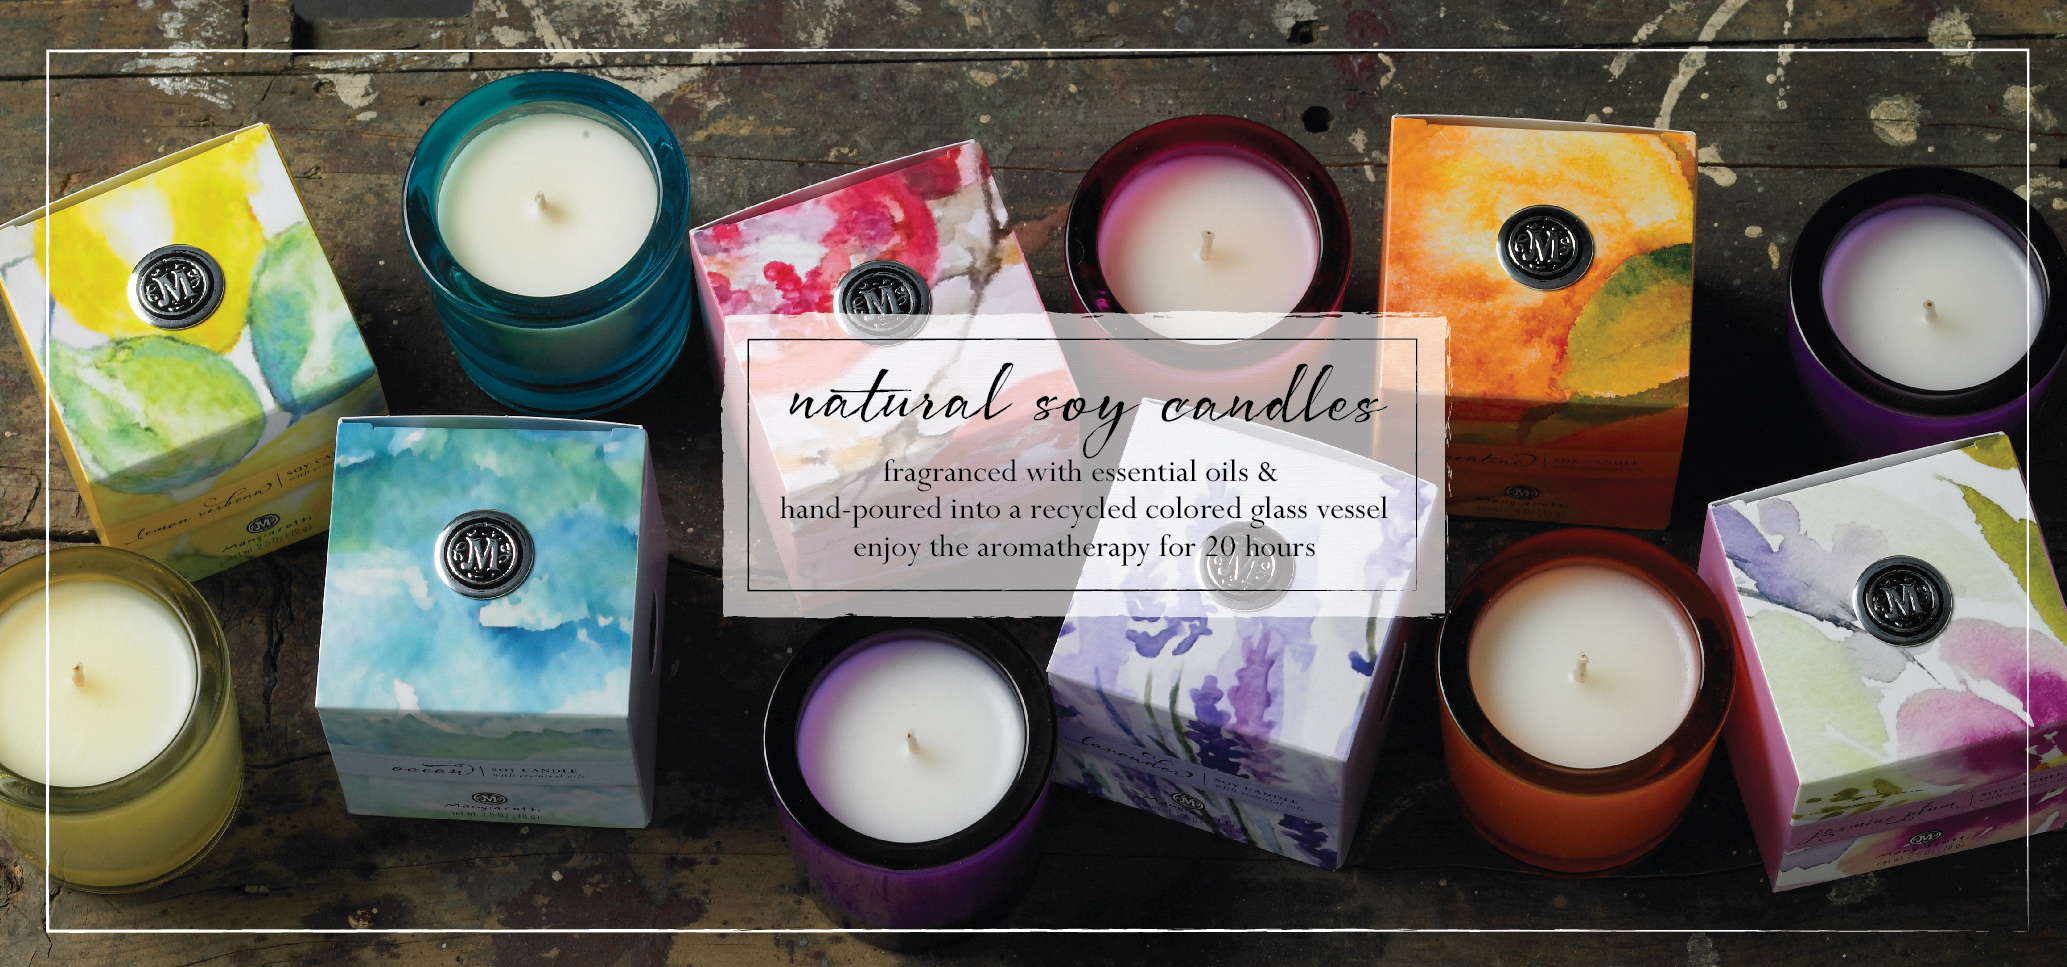 candles-web-product.jpg